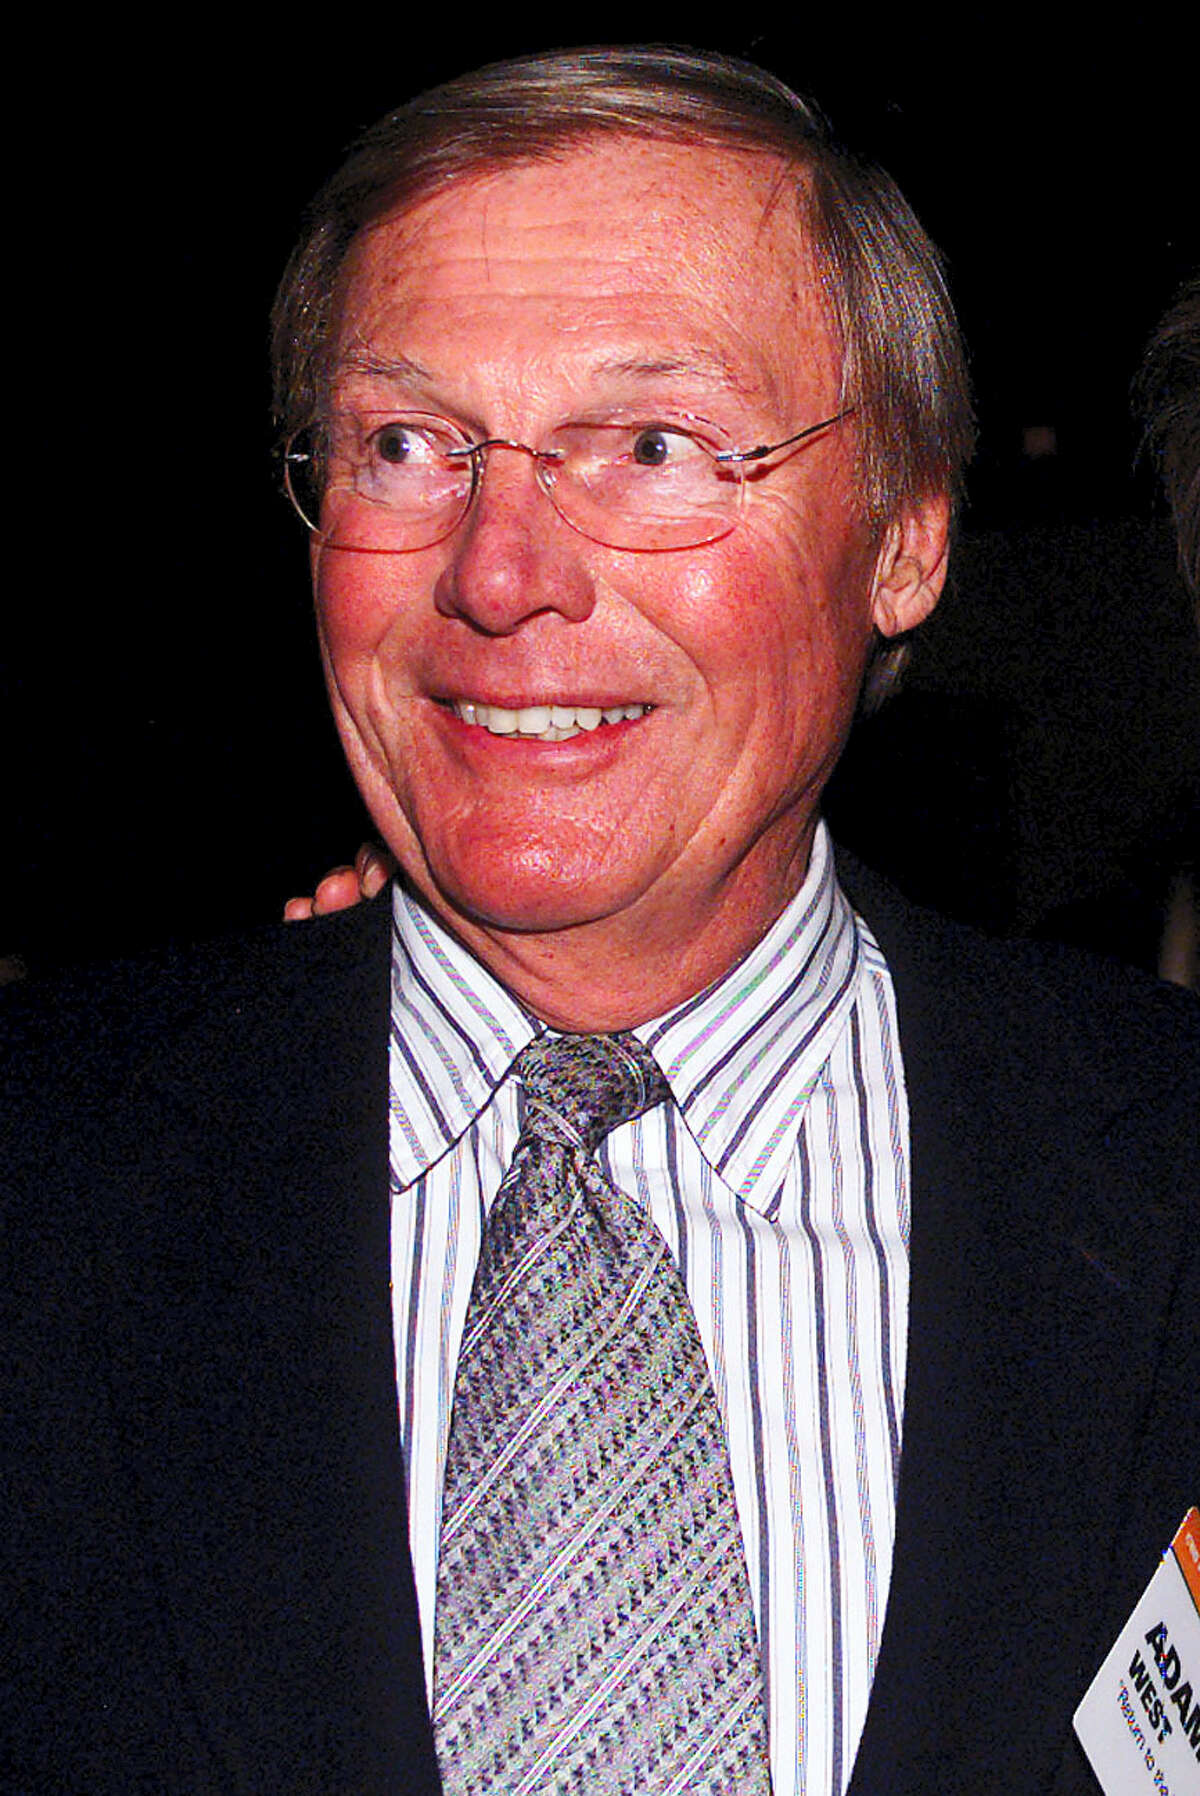 This Jan. 13, 2003, file photo shows actor Adam West in the Hollywood area of Los Angeles. On Saturday, June 10, 2017, his family said the actor, who portrayed Batman in a 1960s TV series, has died at age 88.